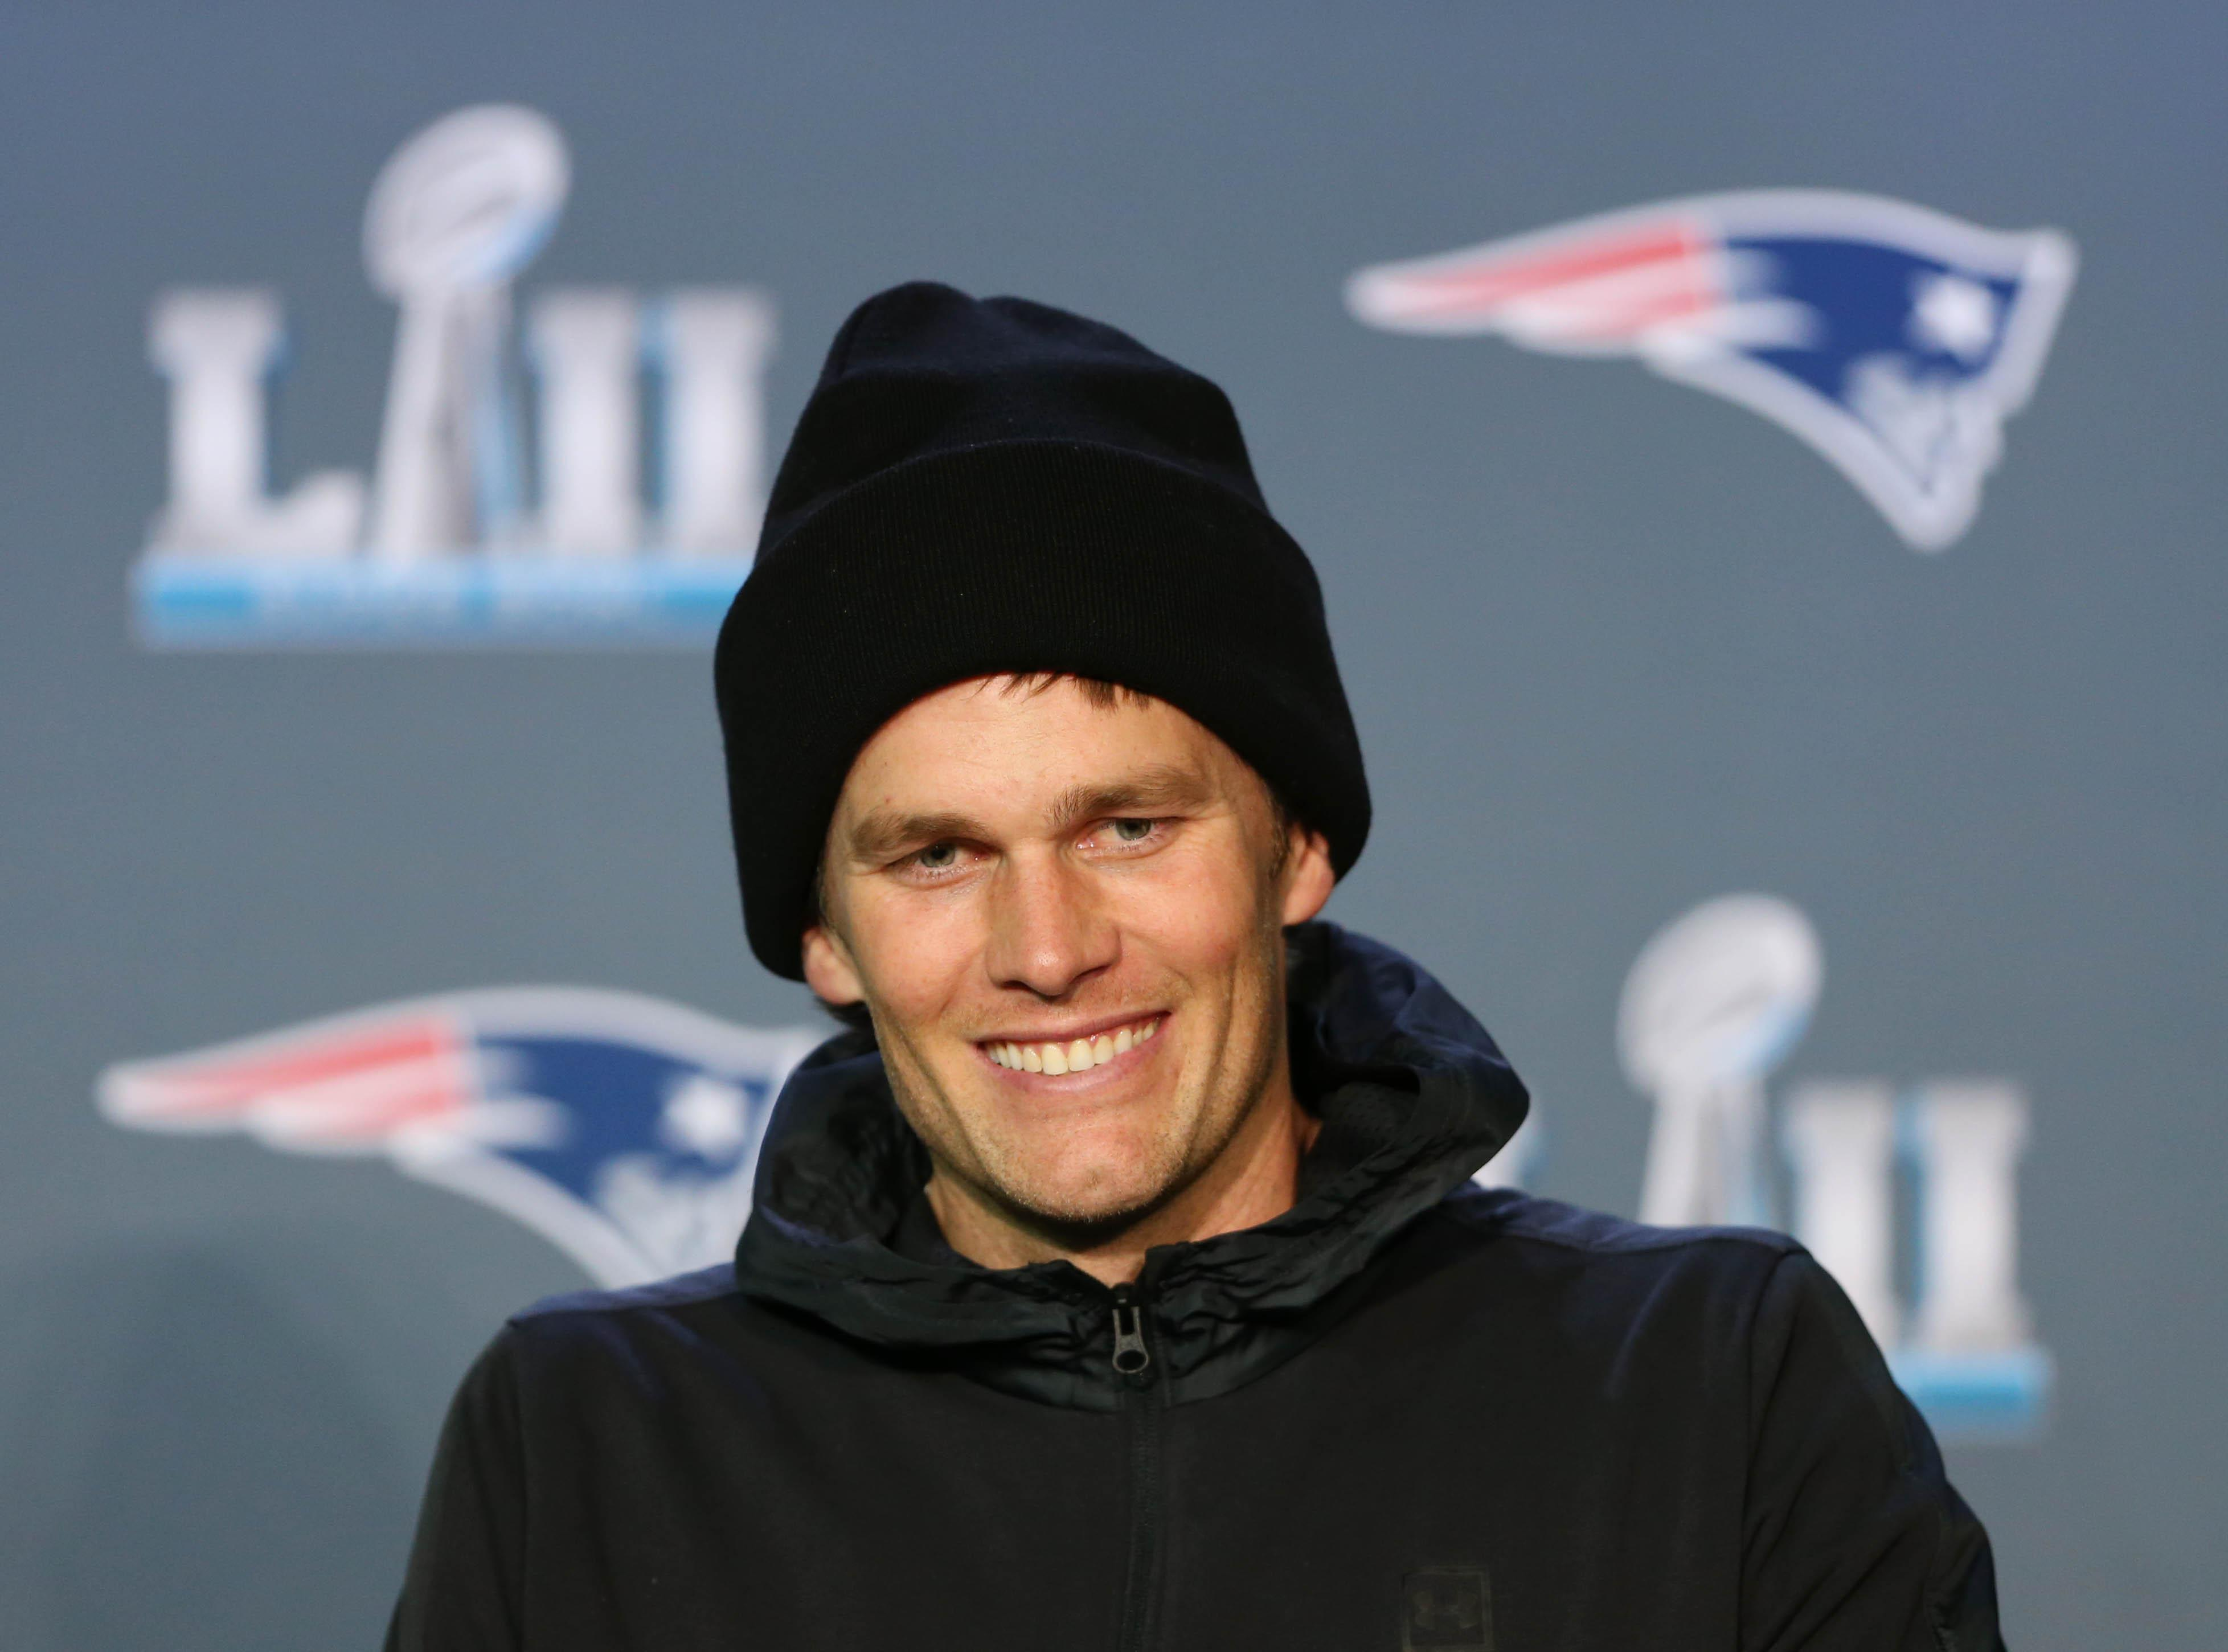 Tom Brady will go down as an all-time great but faces a challenge tonight